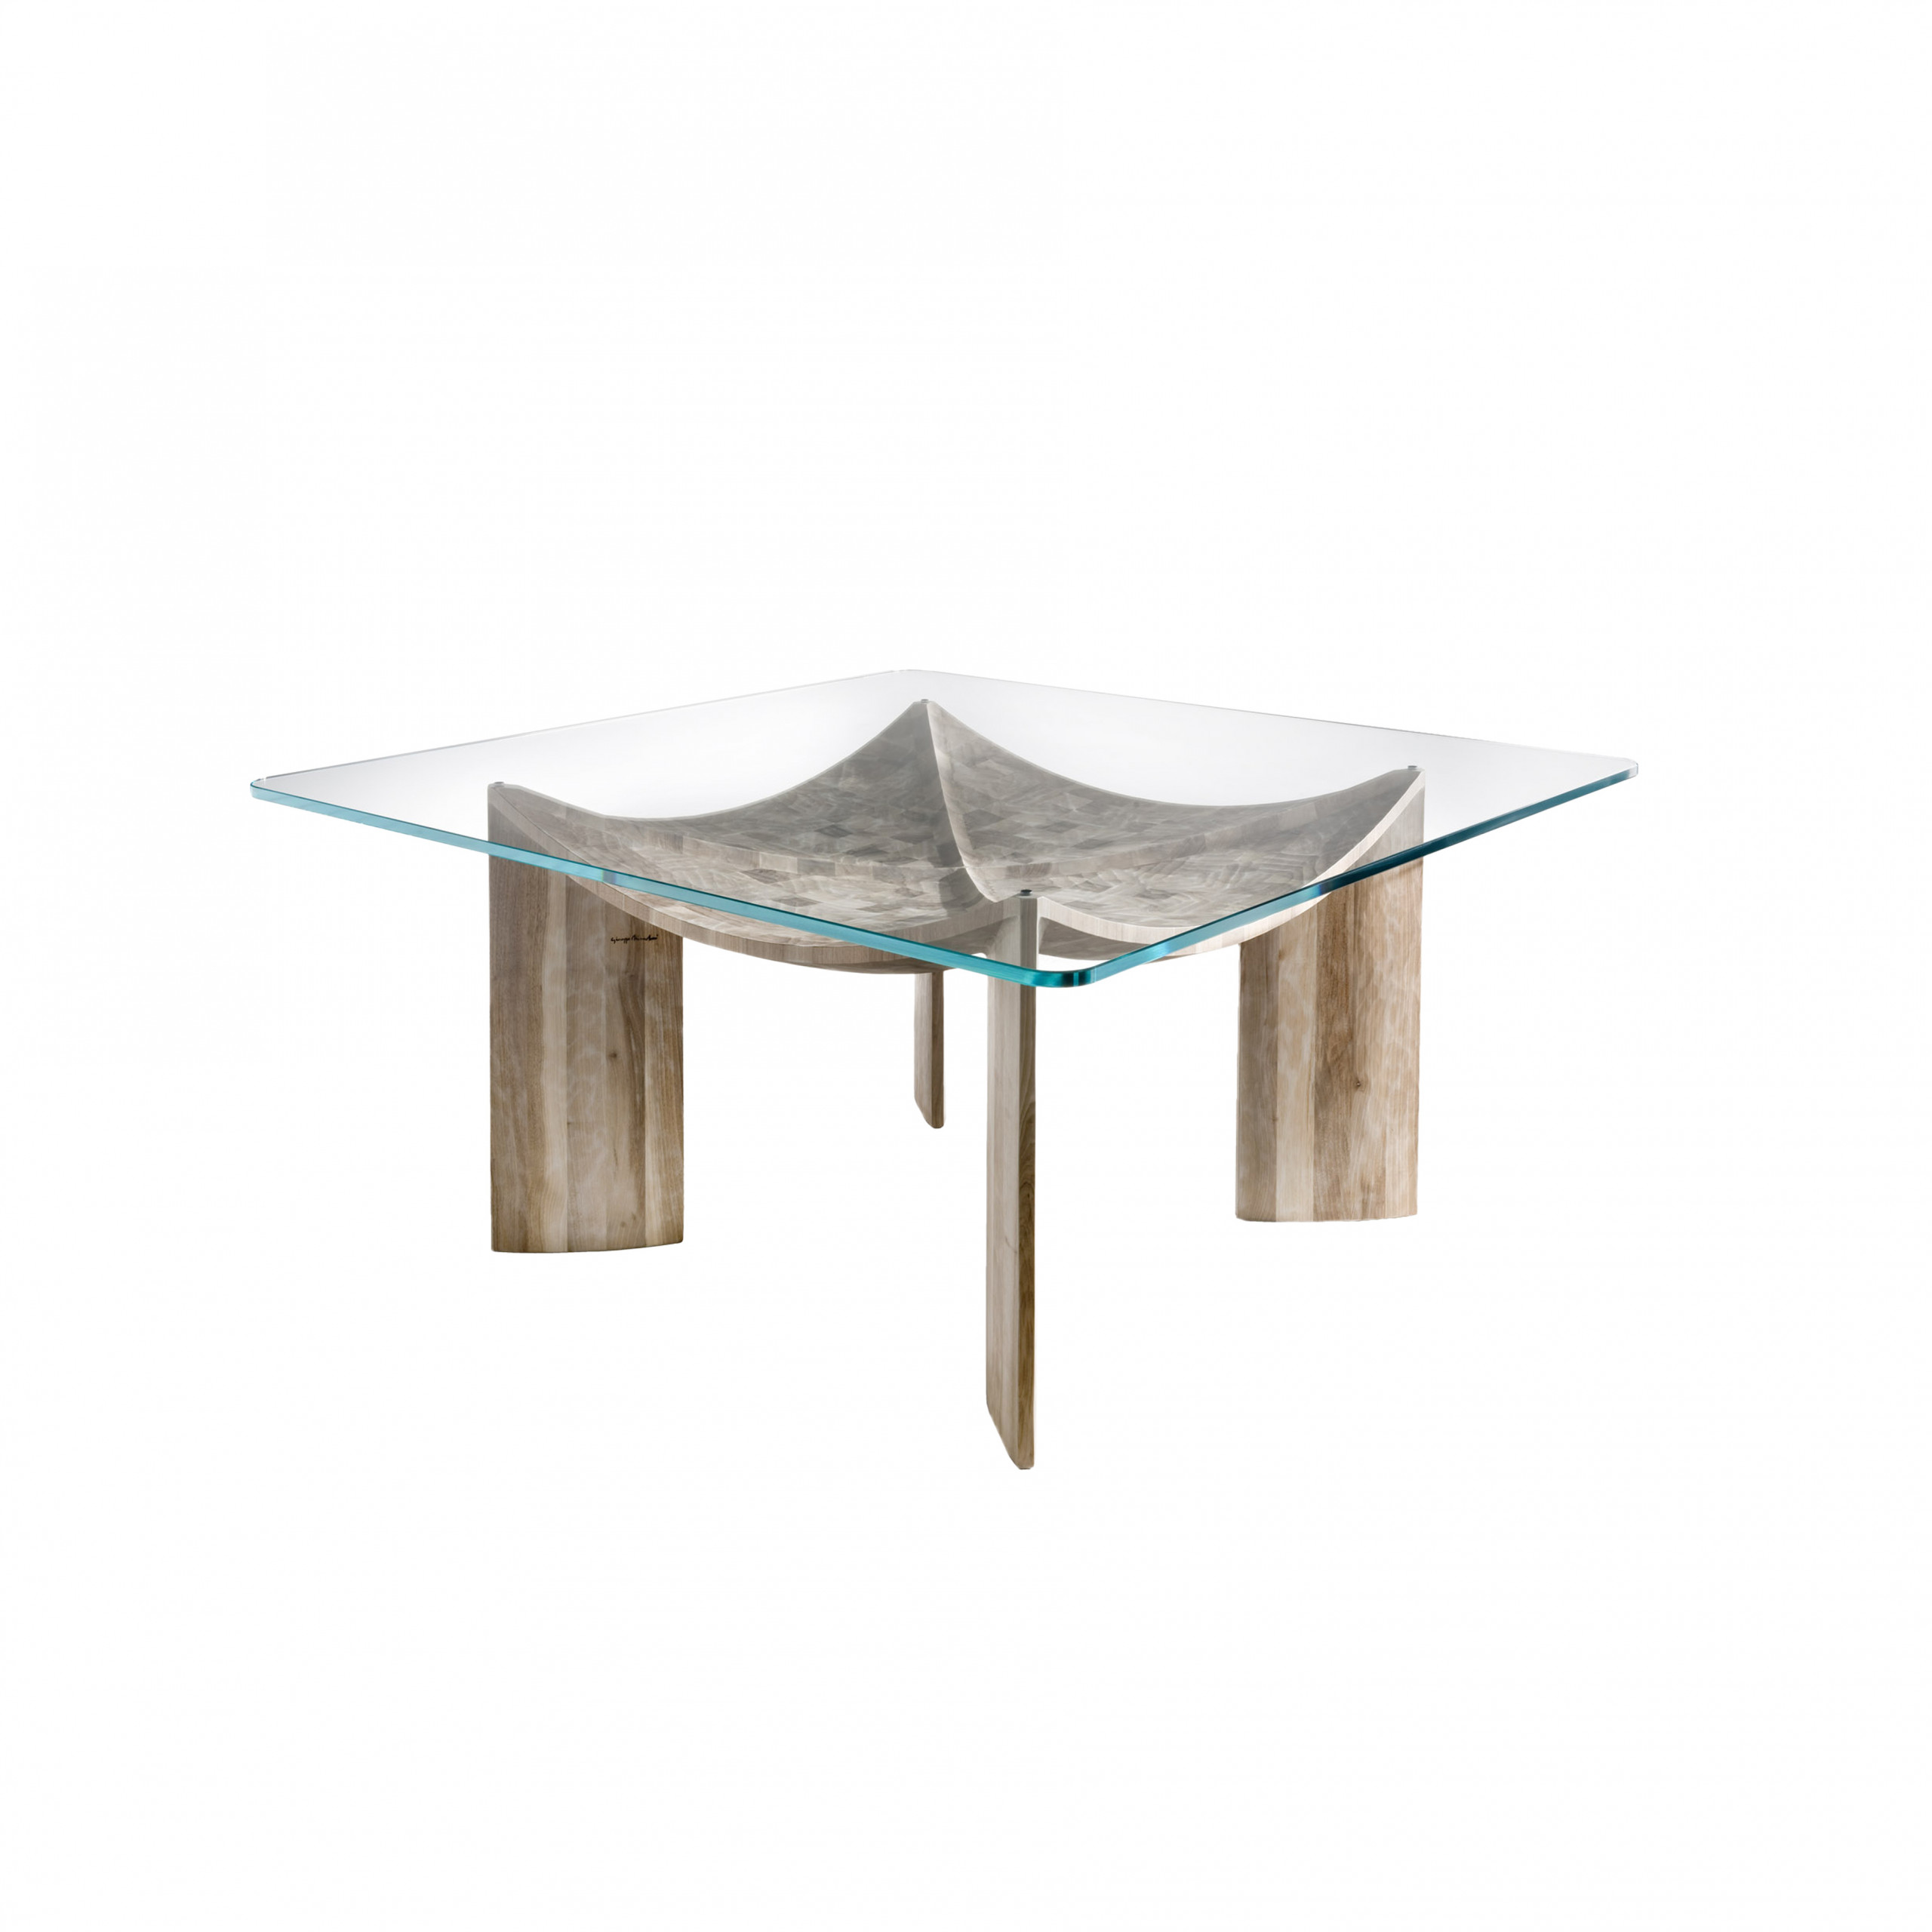 Vela Dining Table - <p>Vela is a table made as a single block using wood with vertical grain. It is manually finished on all sides using a gouge. The top is made of 2 cm thick extra-clear glass.<br />